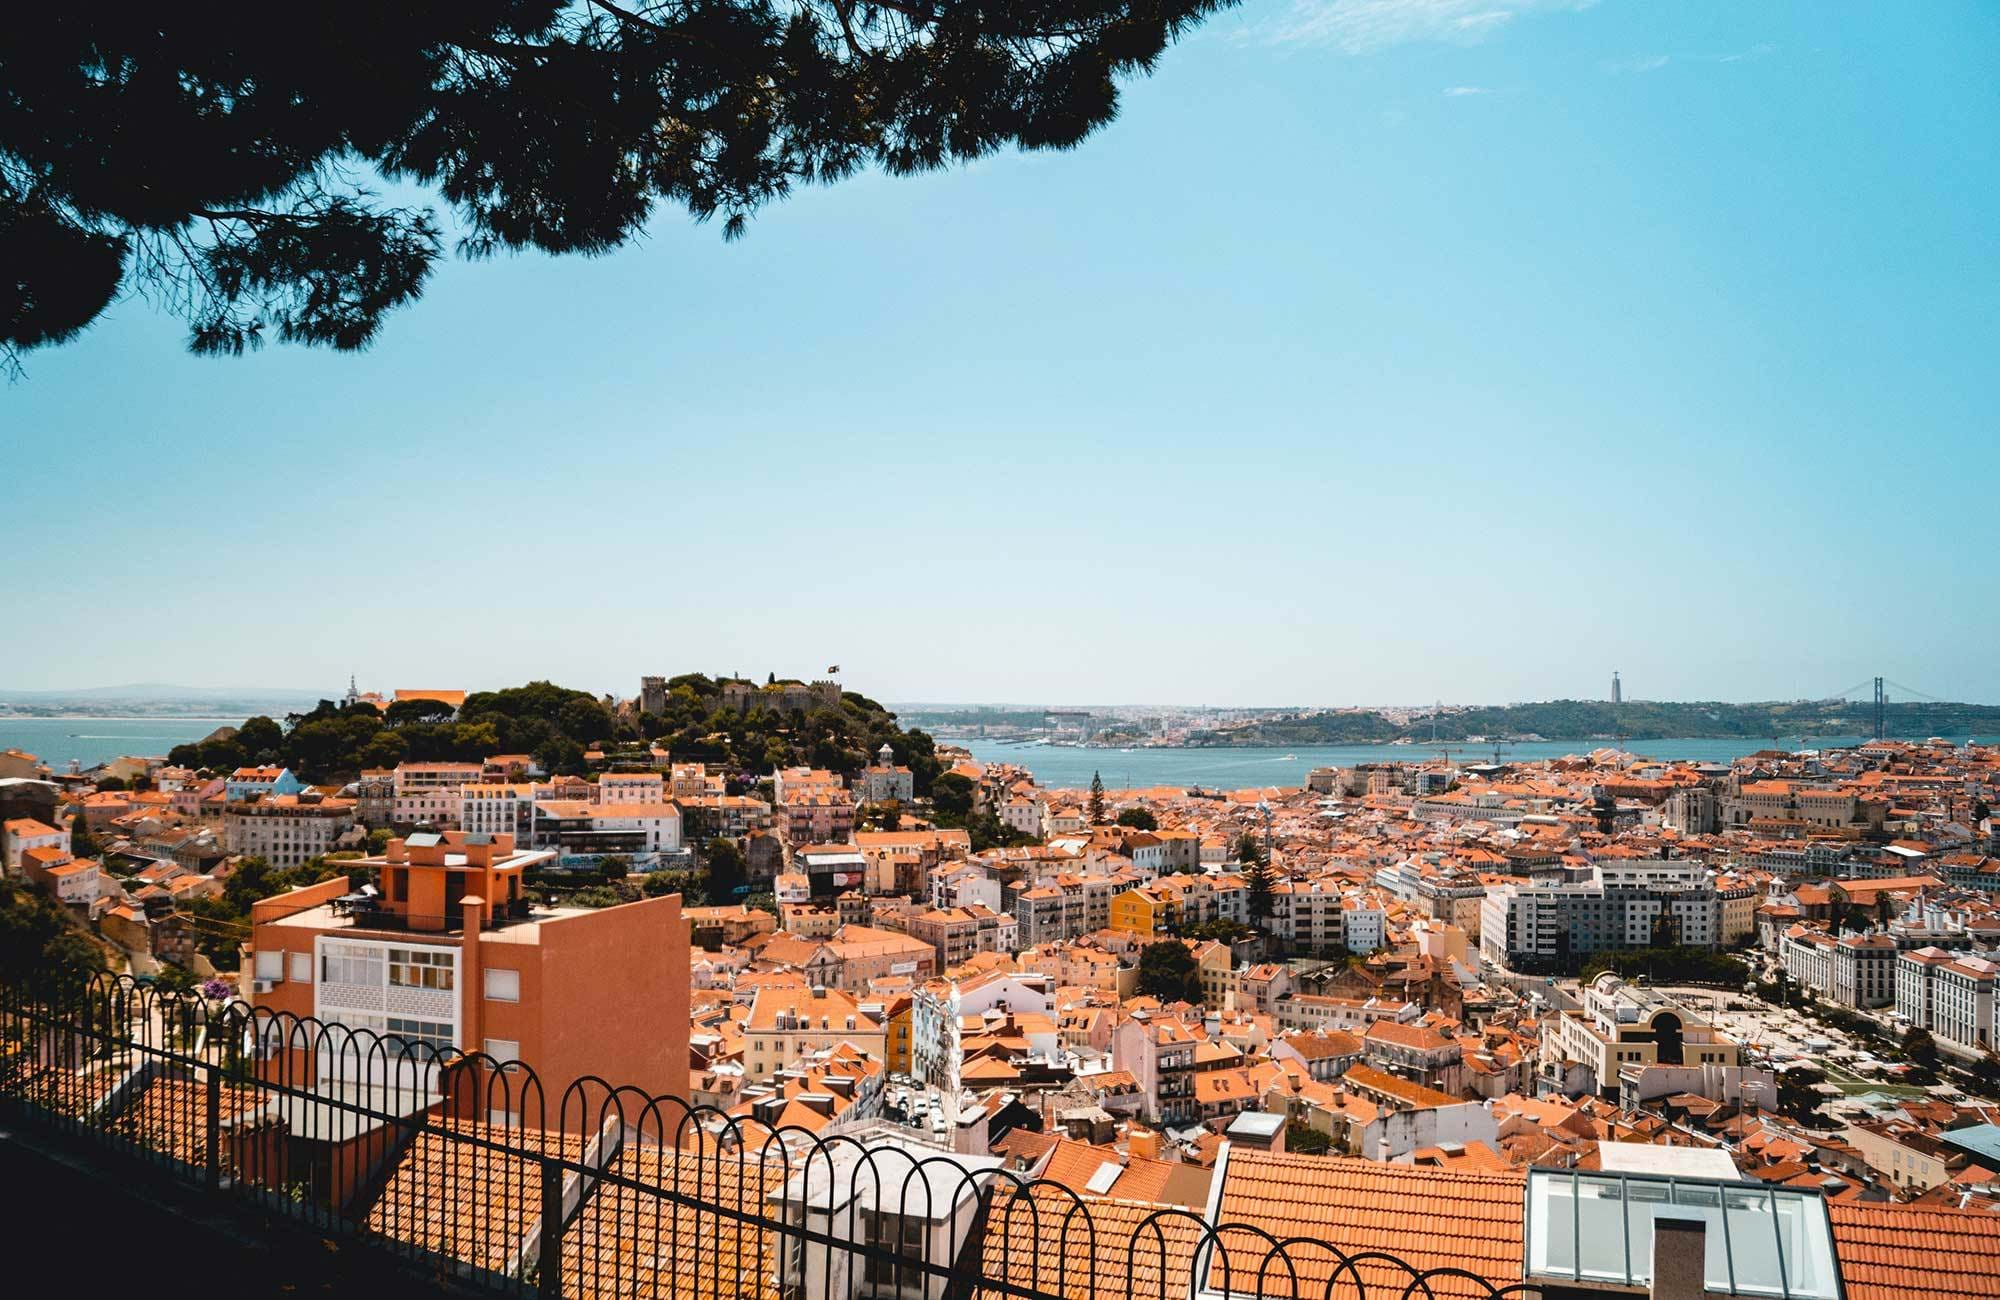 Portugal Lisbon City From The Rooftops